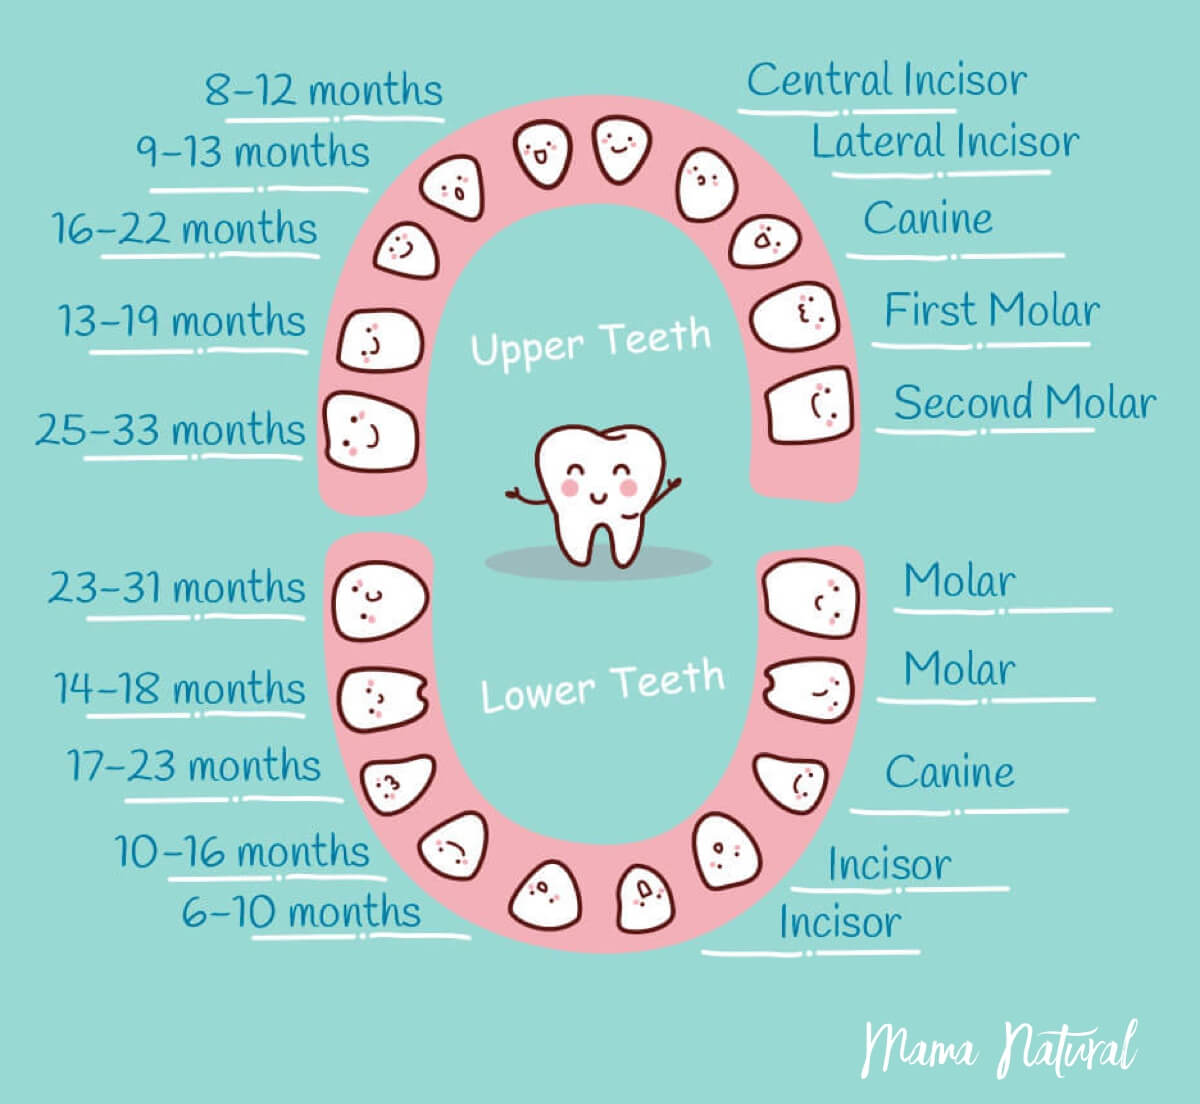 Baby Teeth Chart What Order Do They Come In chart by Mama Natural